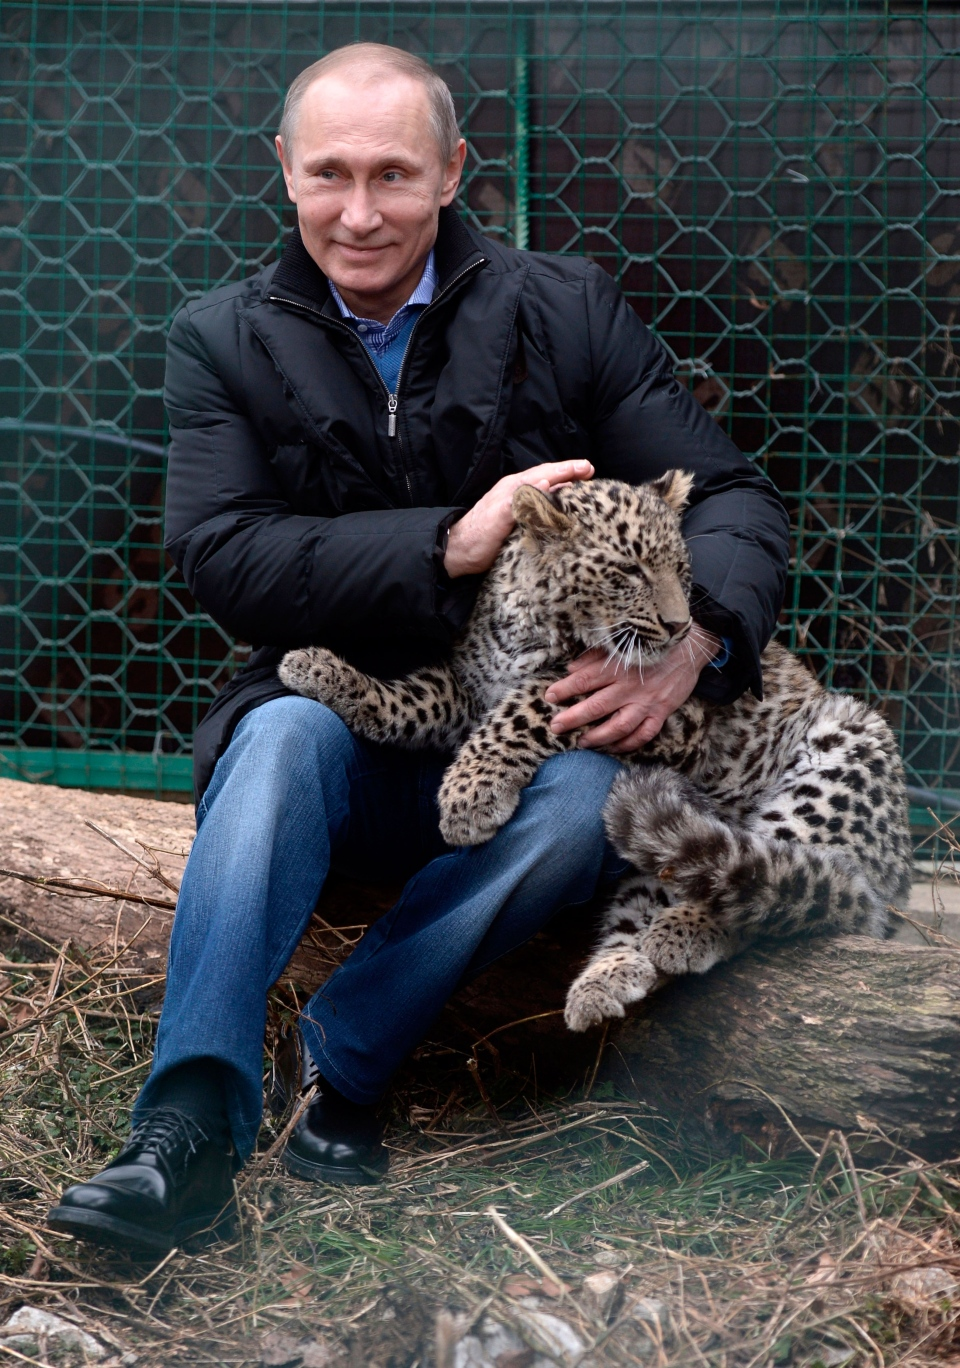 Russian President Vladimir Putin pets a snow leopard cub at the snow leopard sanctuary in the Russian Black Sea resort of Sochi, Tuesday, Feb. 4, 2014. (RIA-Novosti, Alexei Nikolsky, Presidential Press Service)